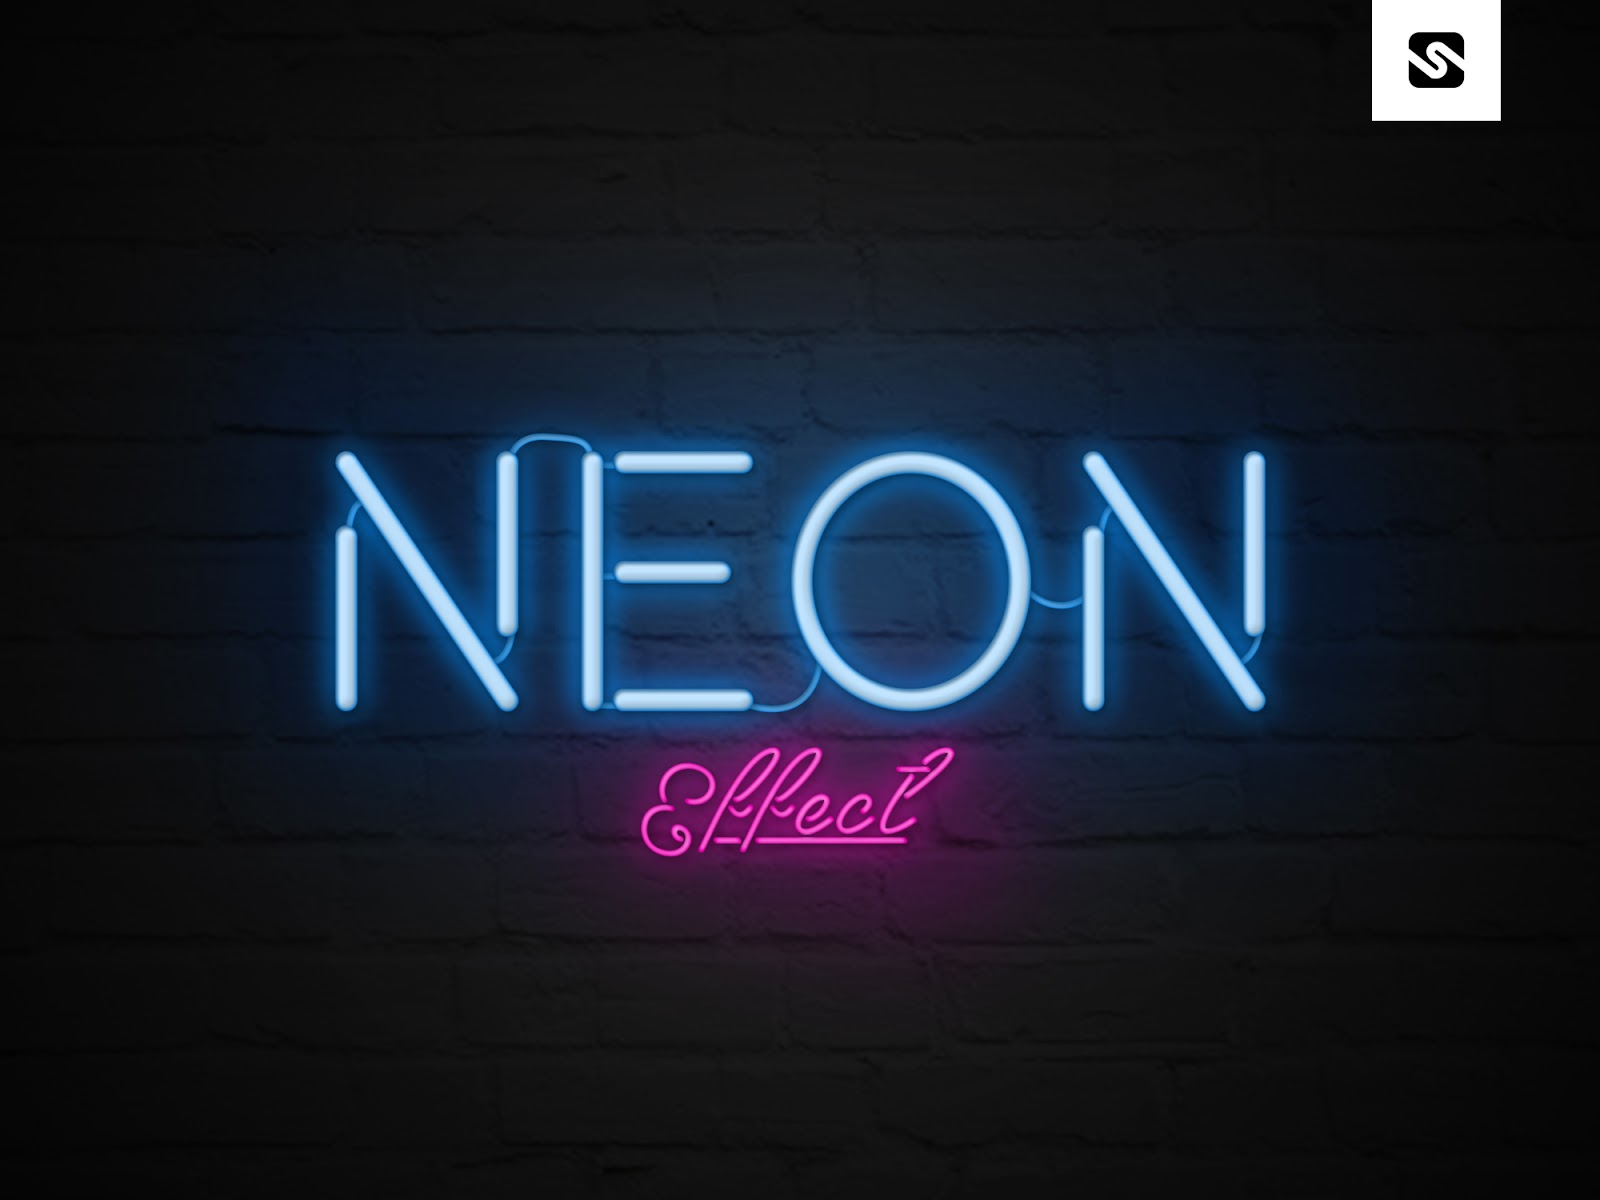 Free Download Neon Text Effect Template Psd File